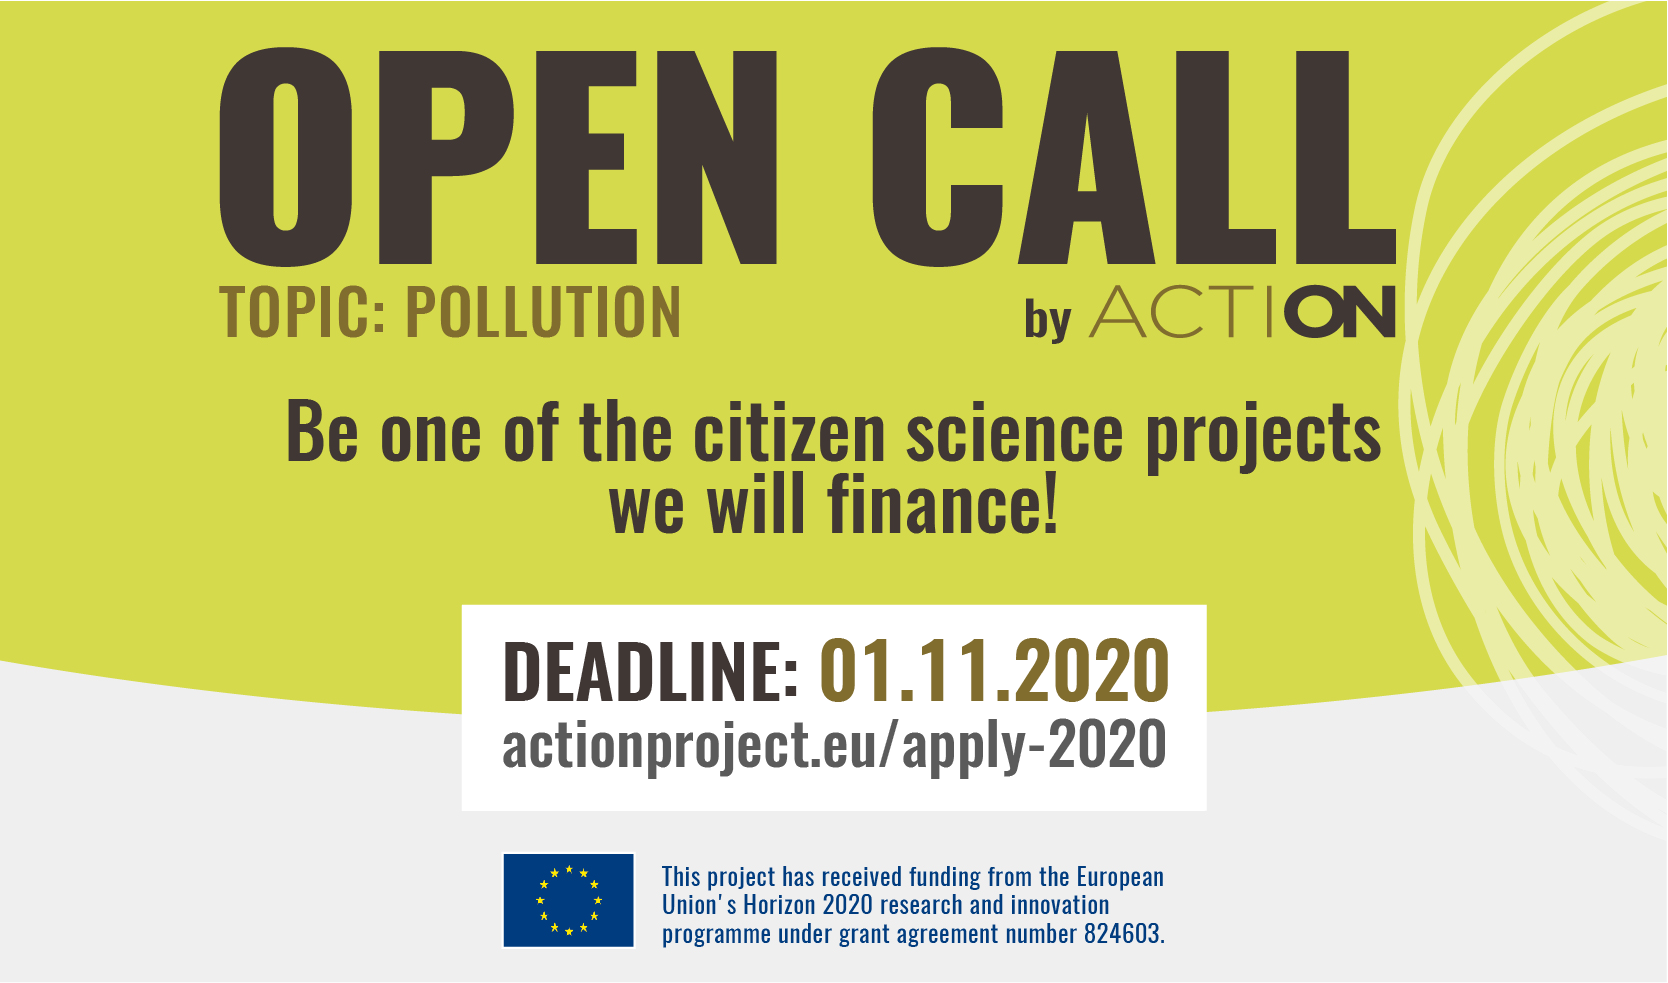 ACTION 2020 Open Call starts today